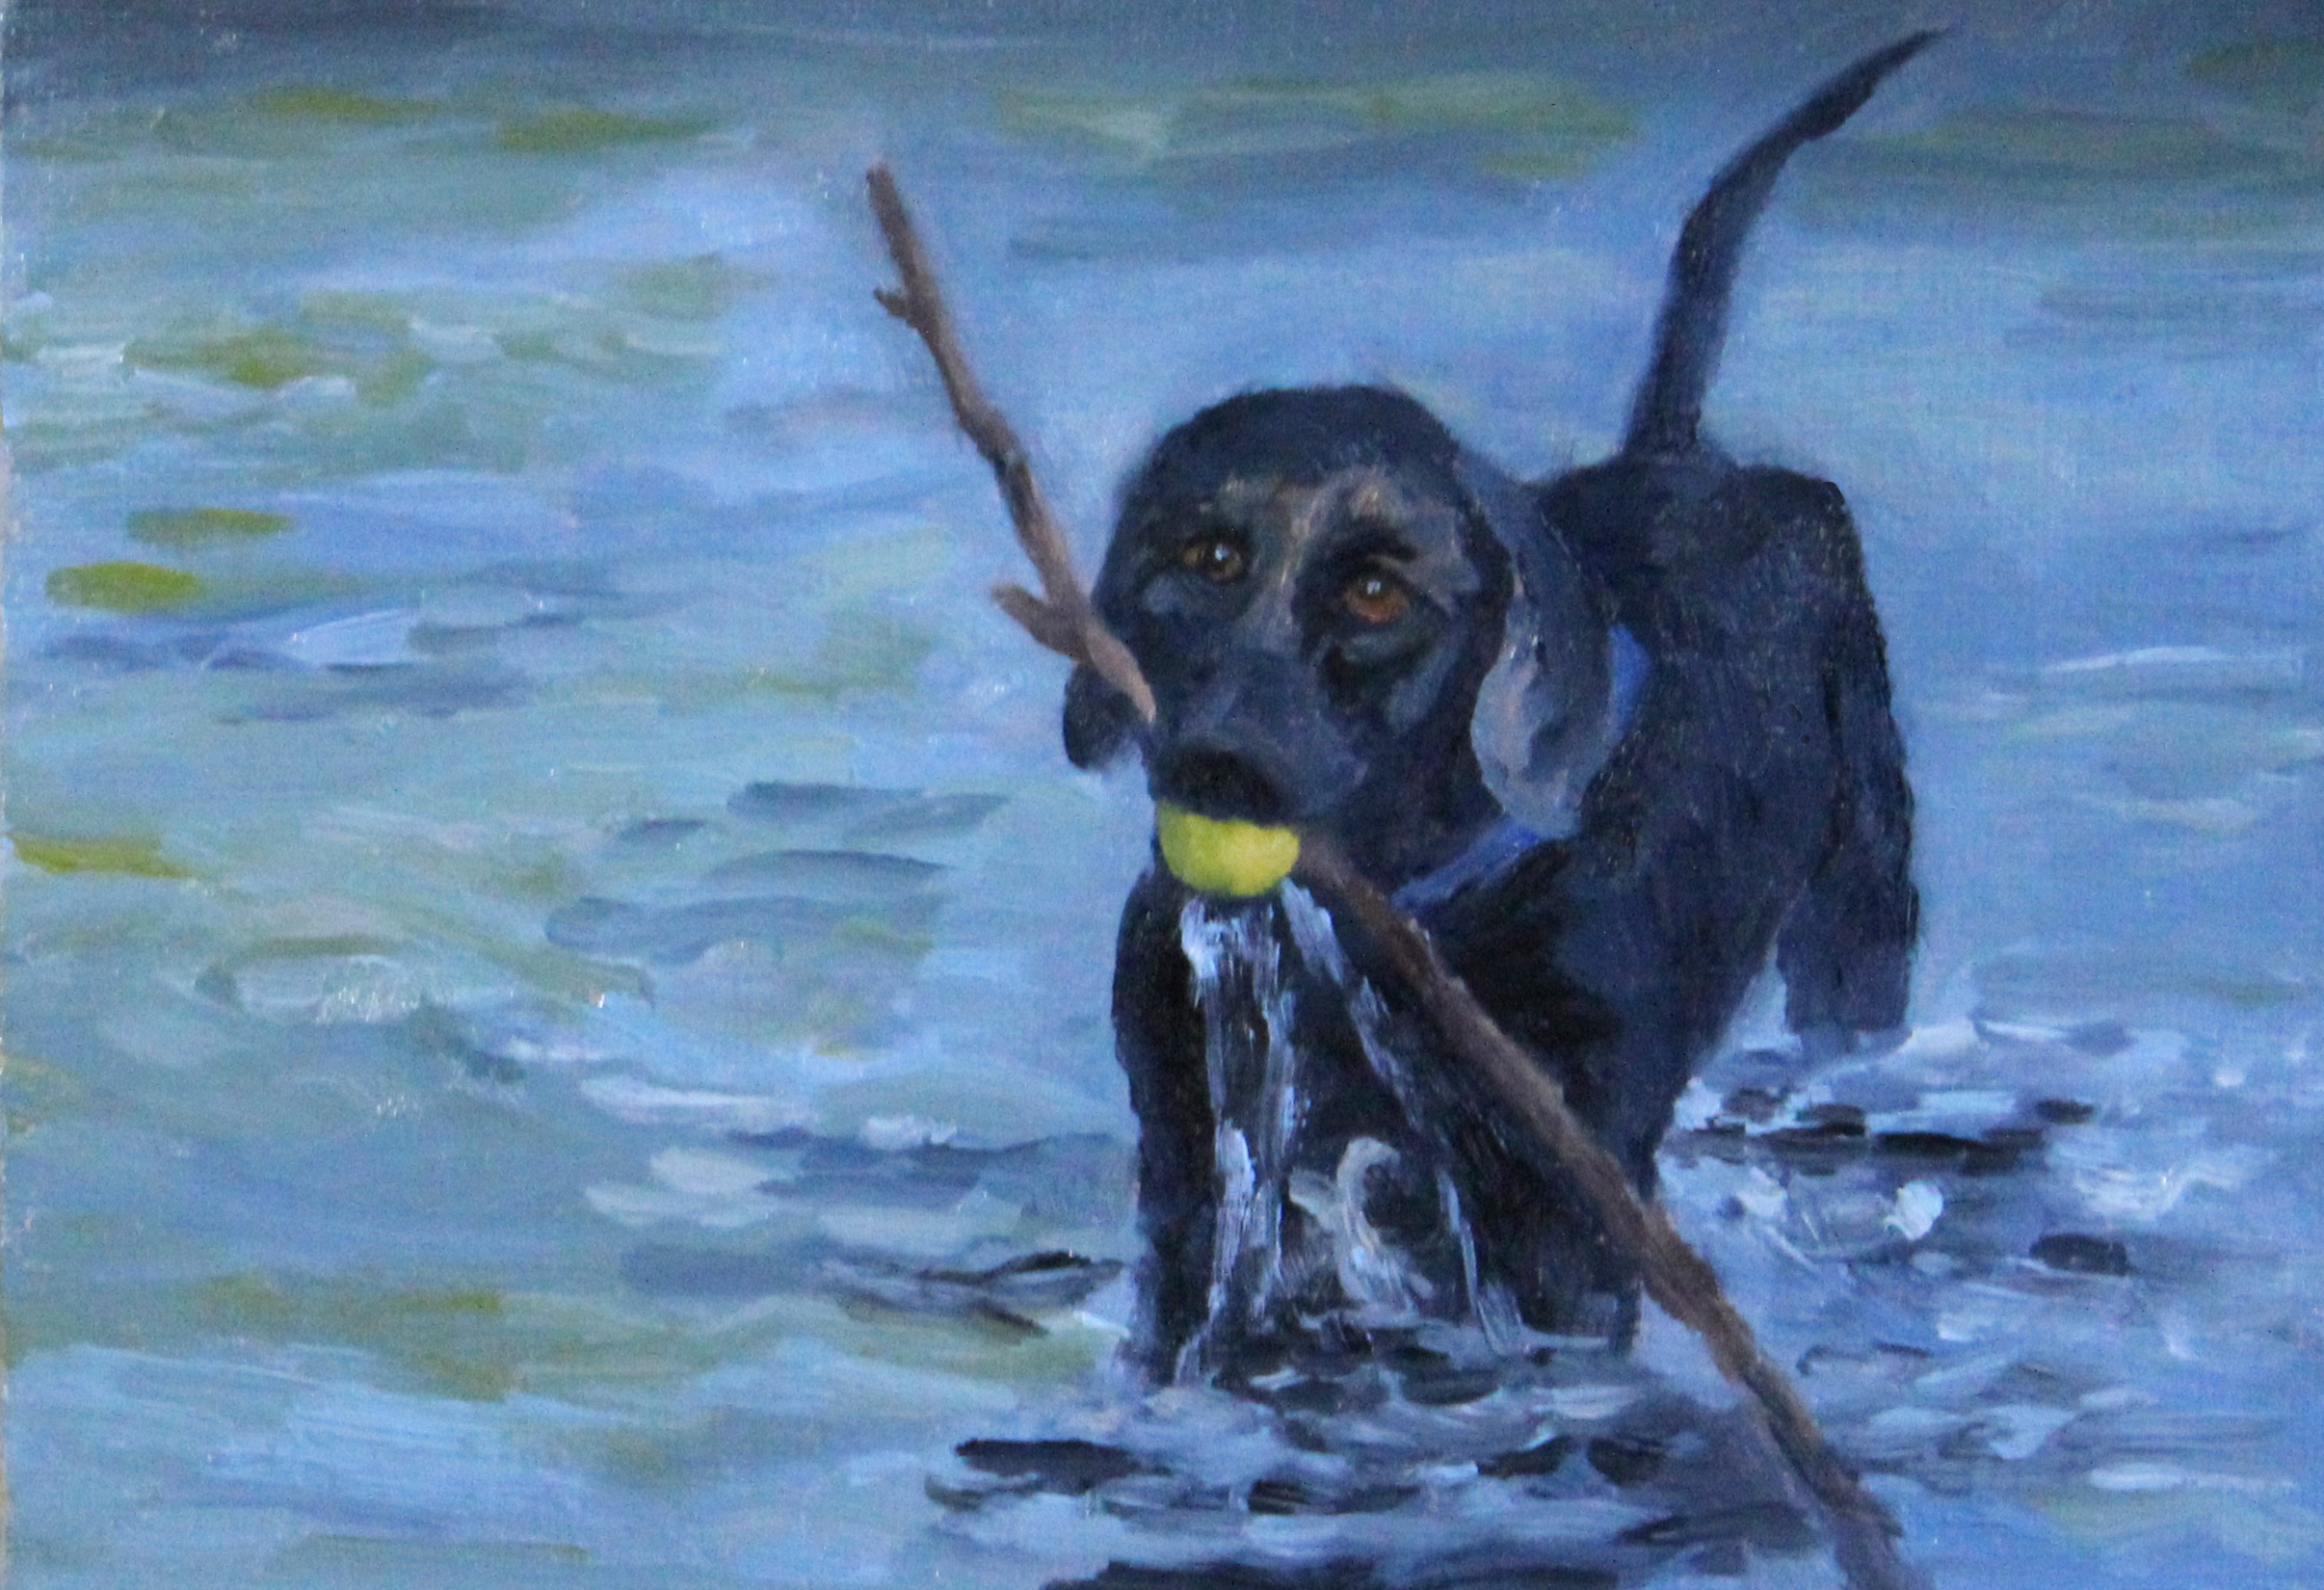 Starboard Black Labrador Retriever playing wih ball and stick